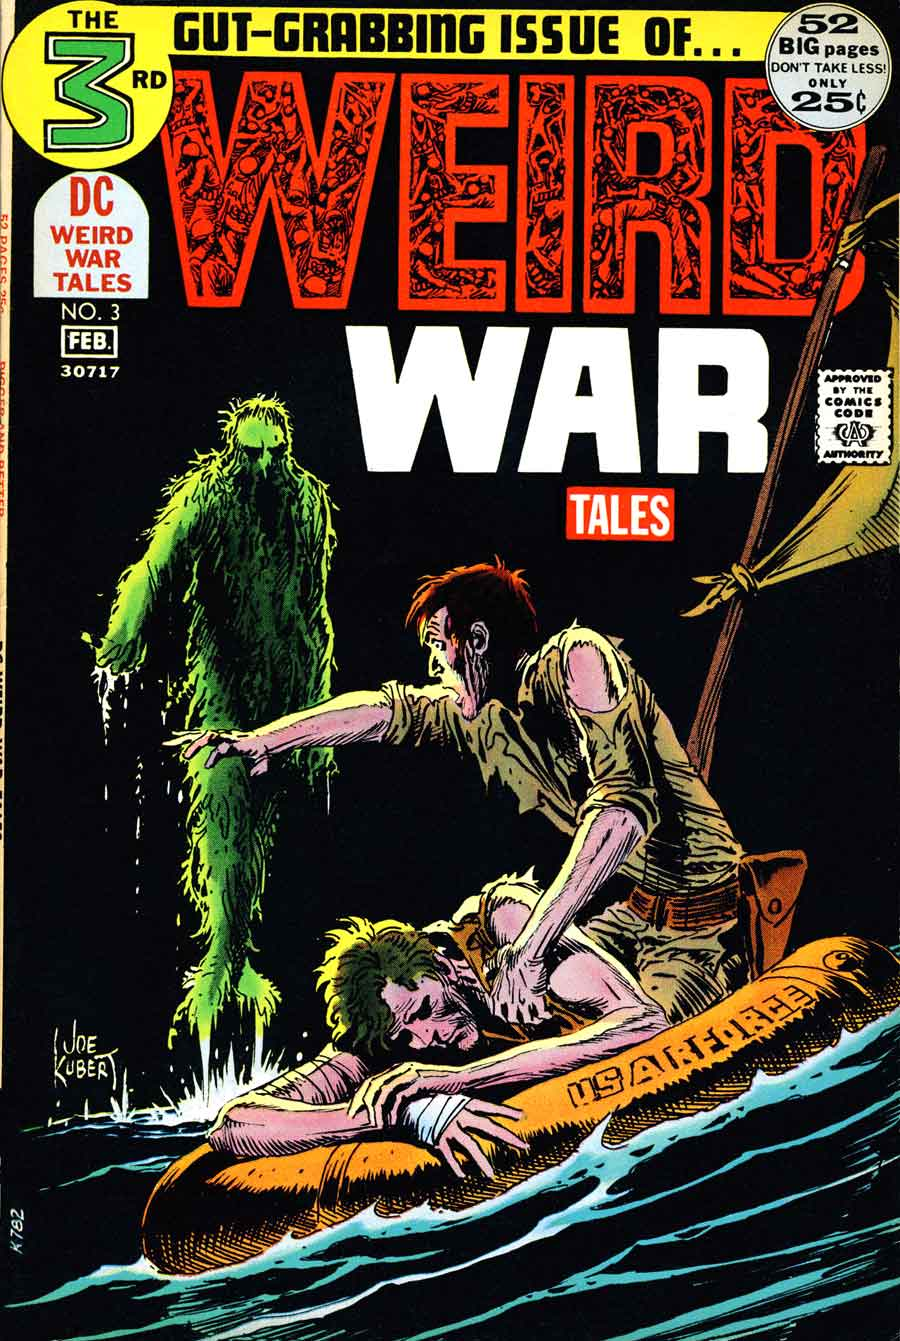 Weird War Tales v1 #3 dc bronze age comic book cover art by Joe Kubert